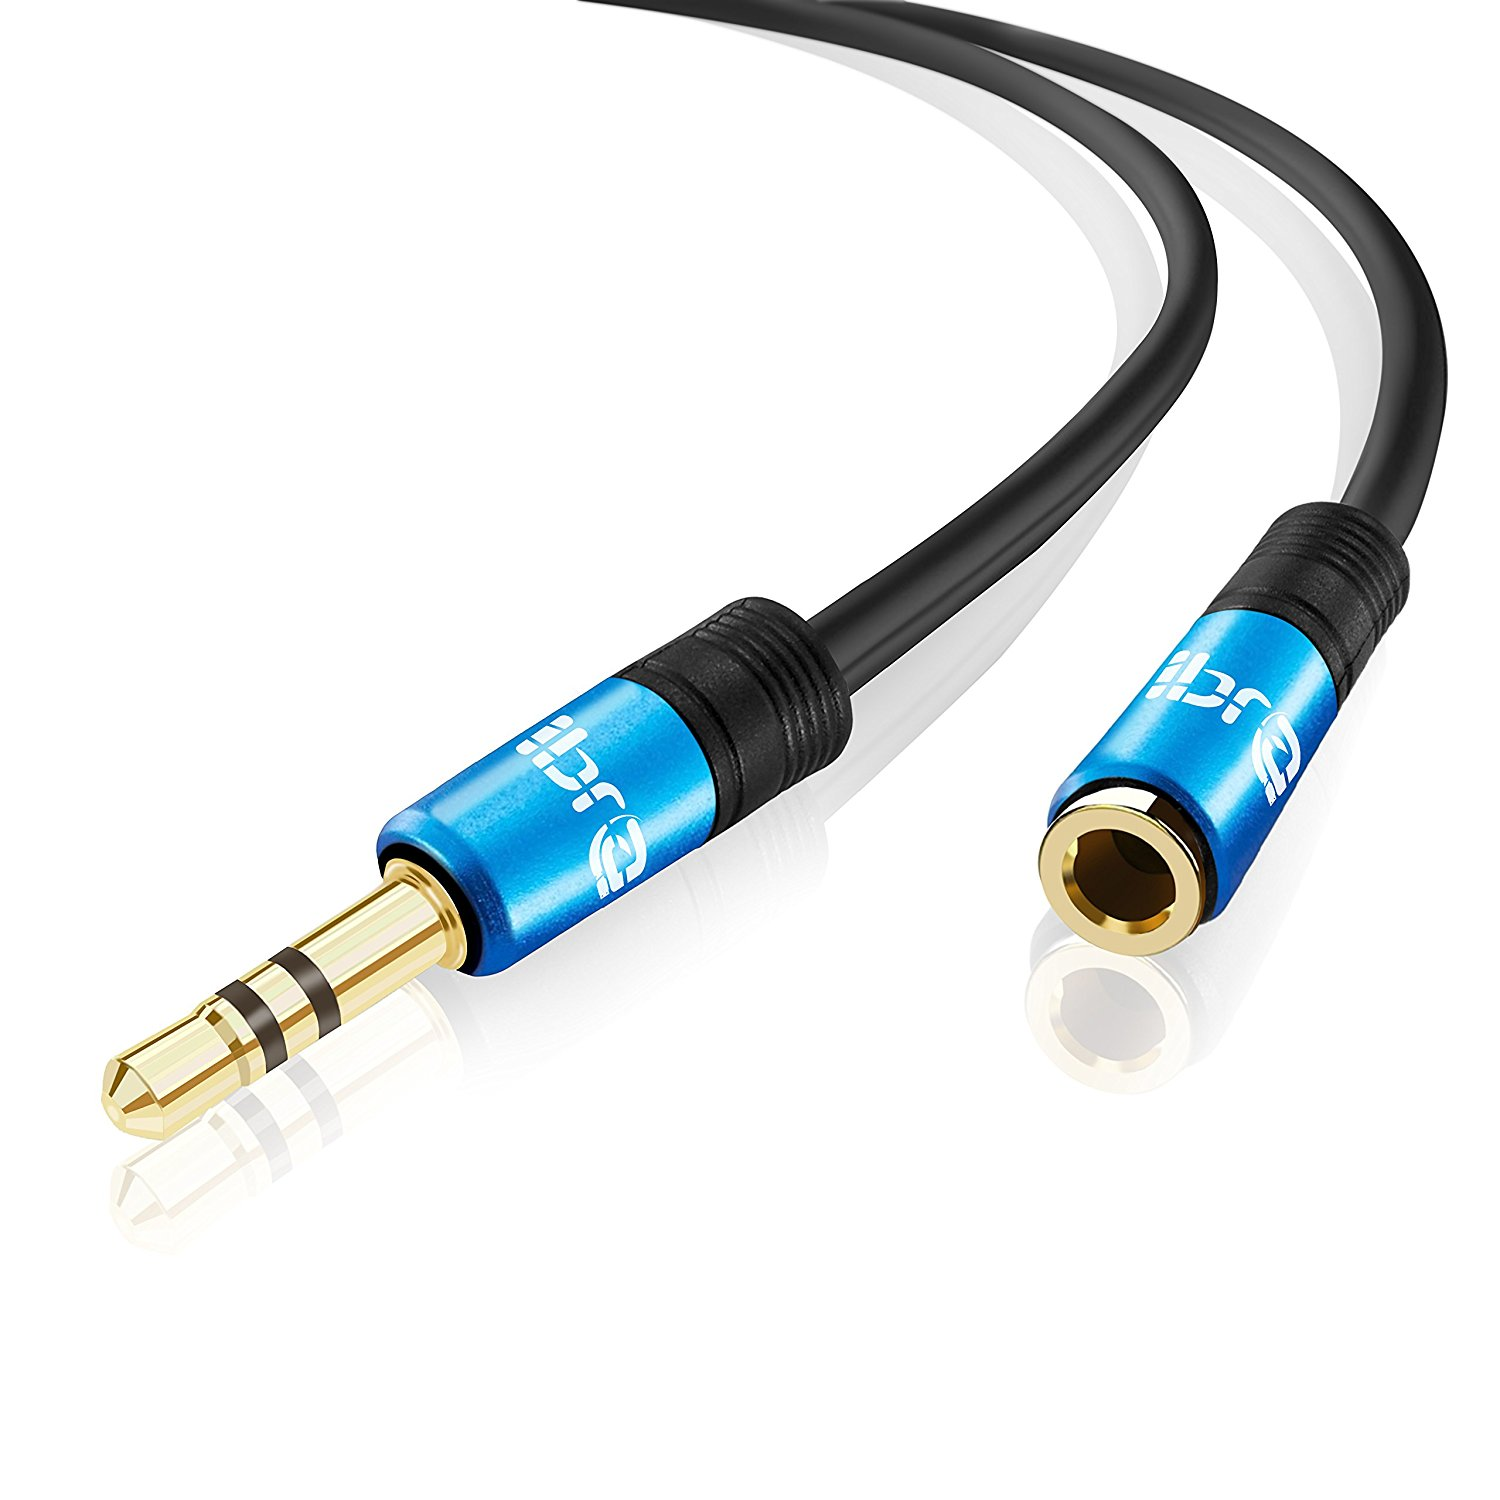 IBRA 3M Stereo Jack Extension Cable 3.5mm Male > 3.5mm Female - Blue